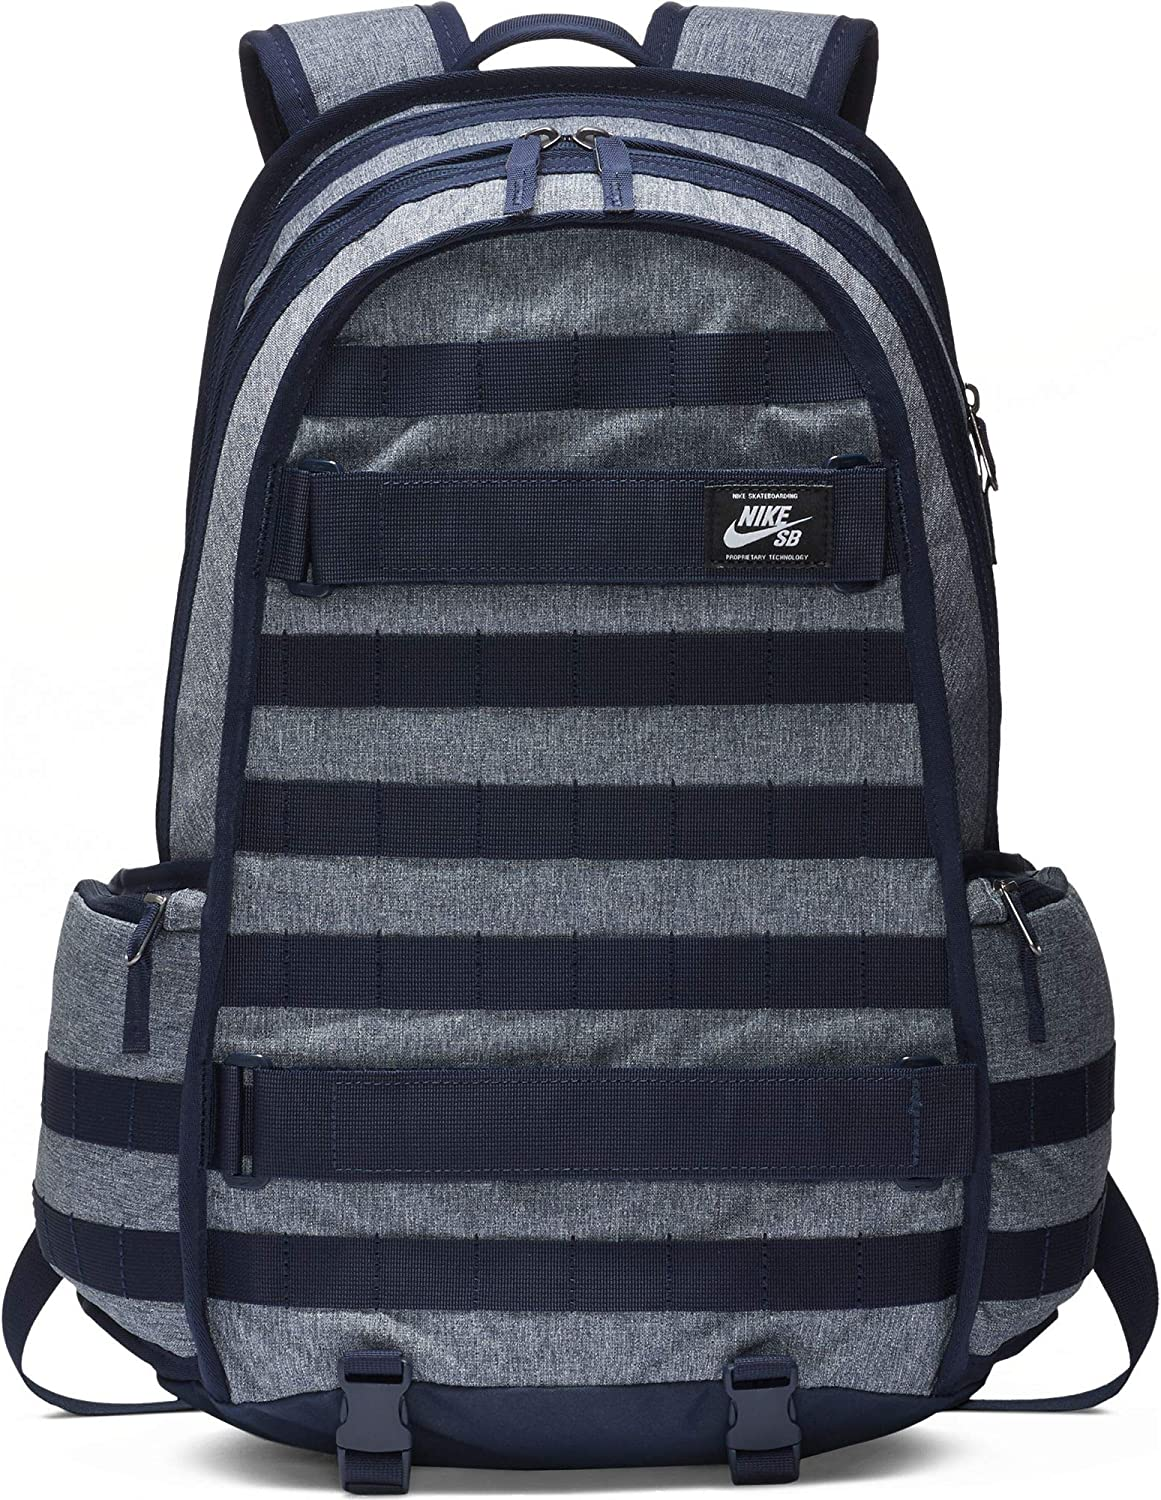 Accesorios Presunción Personas con discapacidad auditiva  Amazon.com: Nike SB RPM AOP Skateboarding Backpack - BA6033-010: Clothing